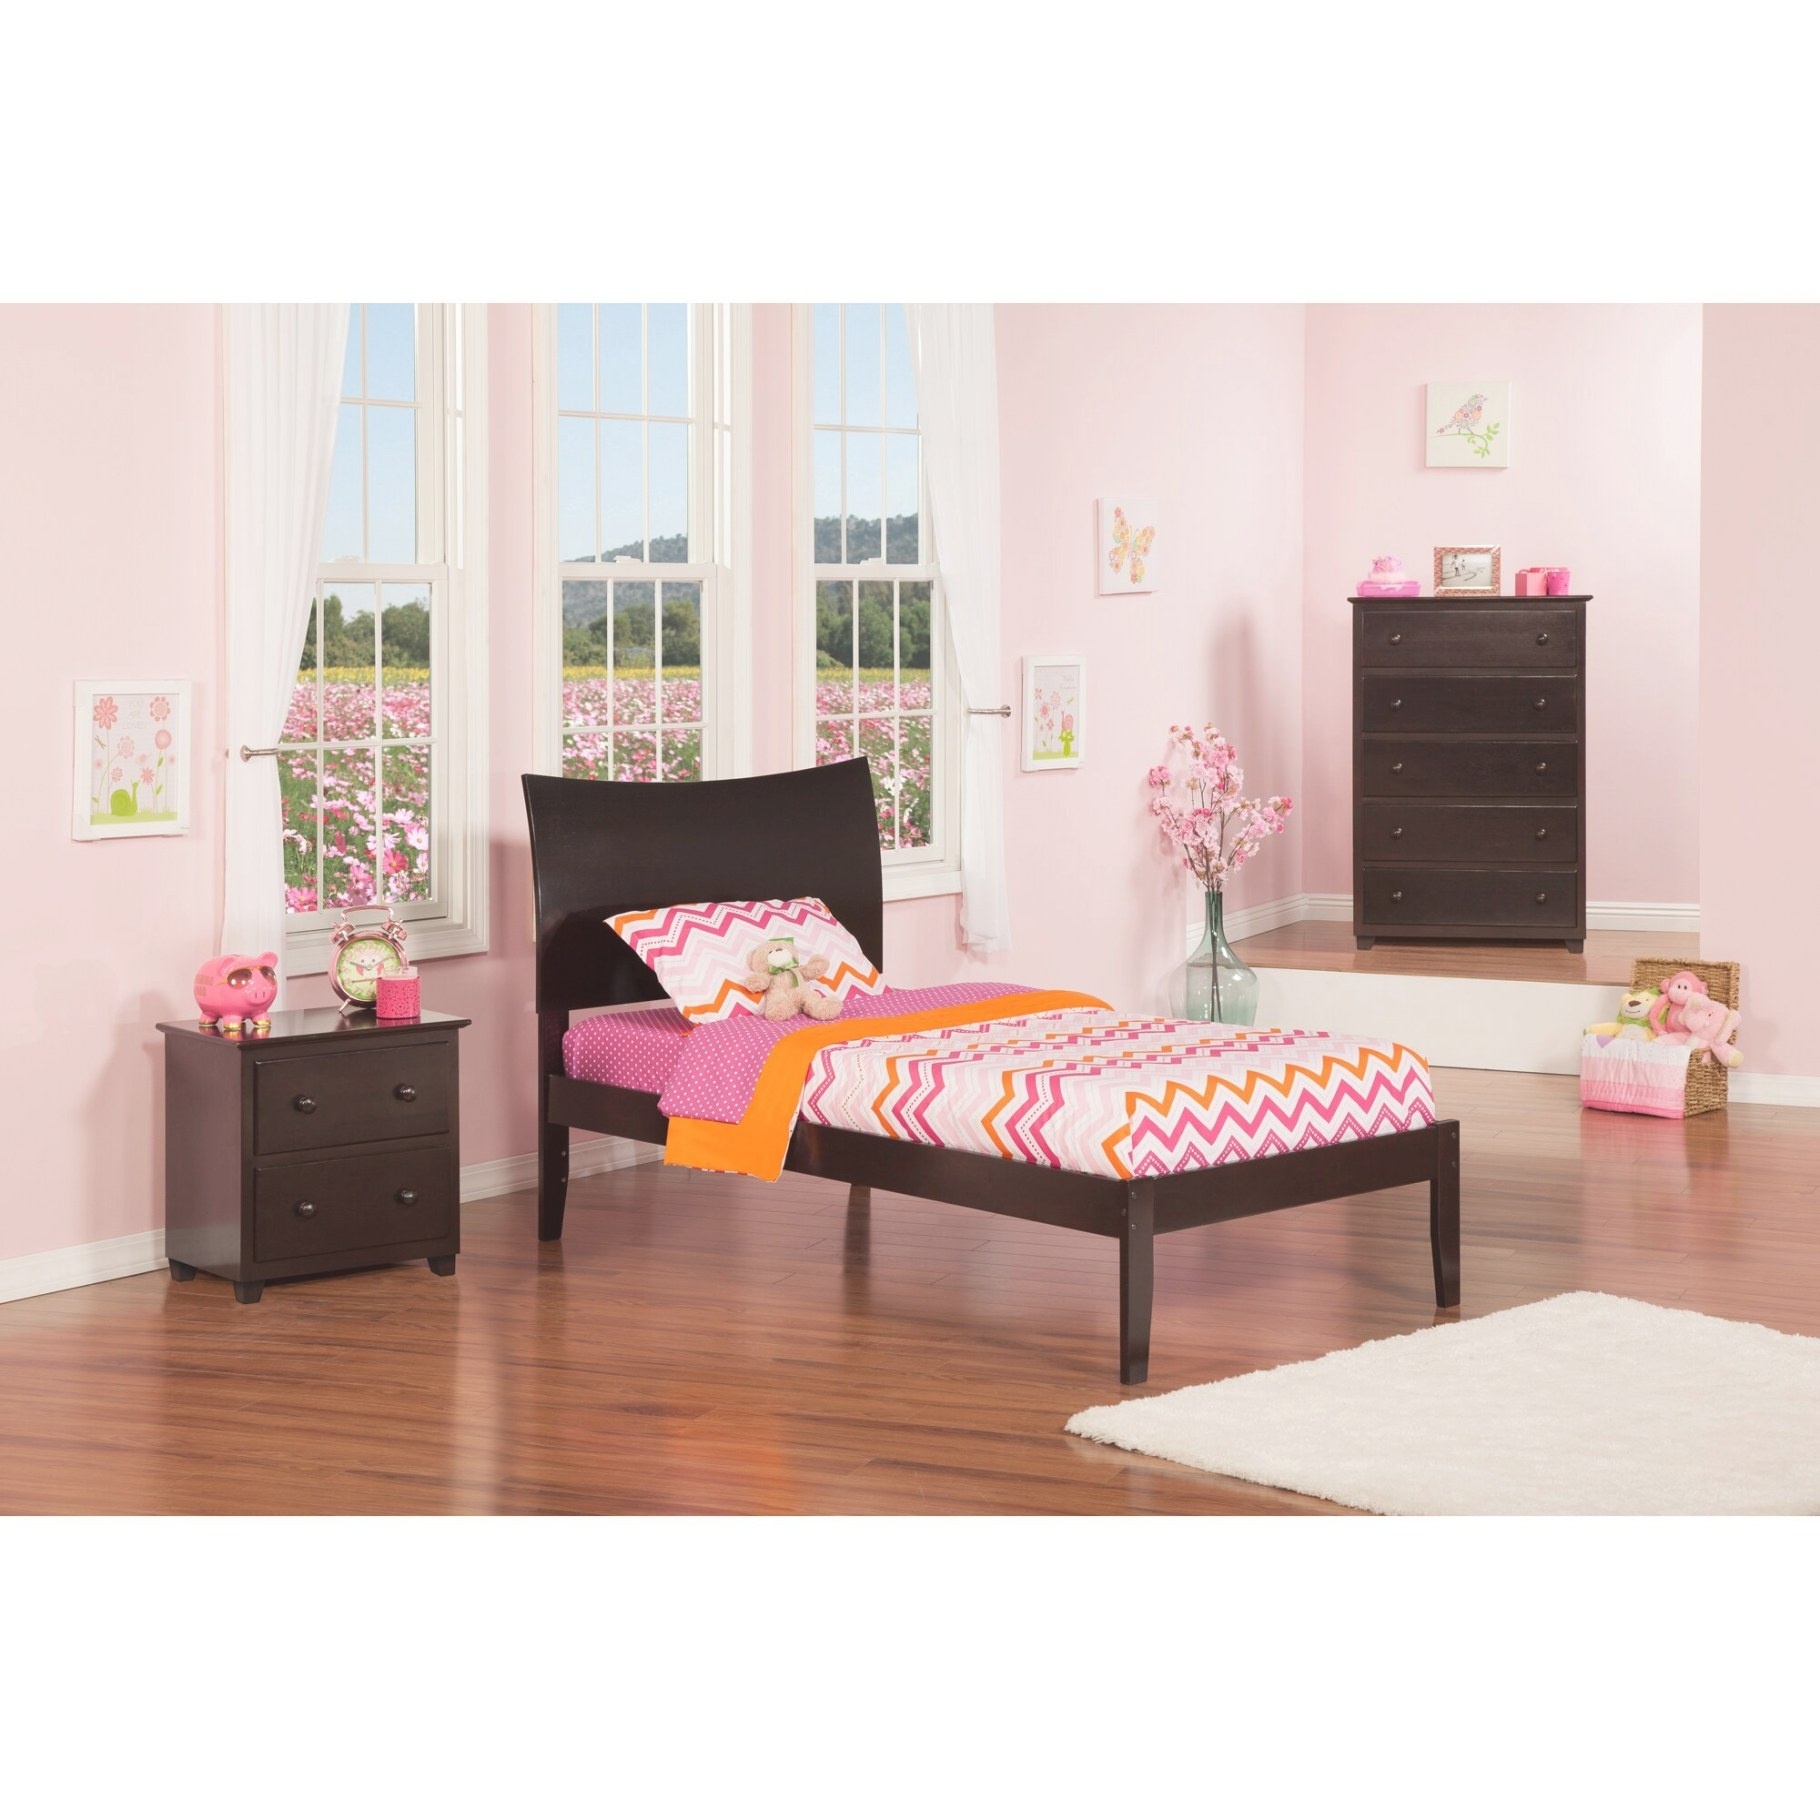 Atlantic Furniture Soho Extra Long Twin Sleigh Bed with Extra Long Twin Bed